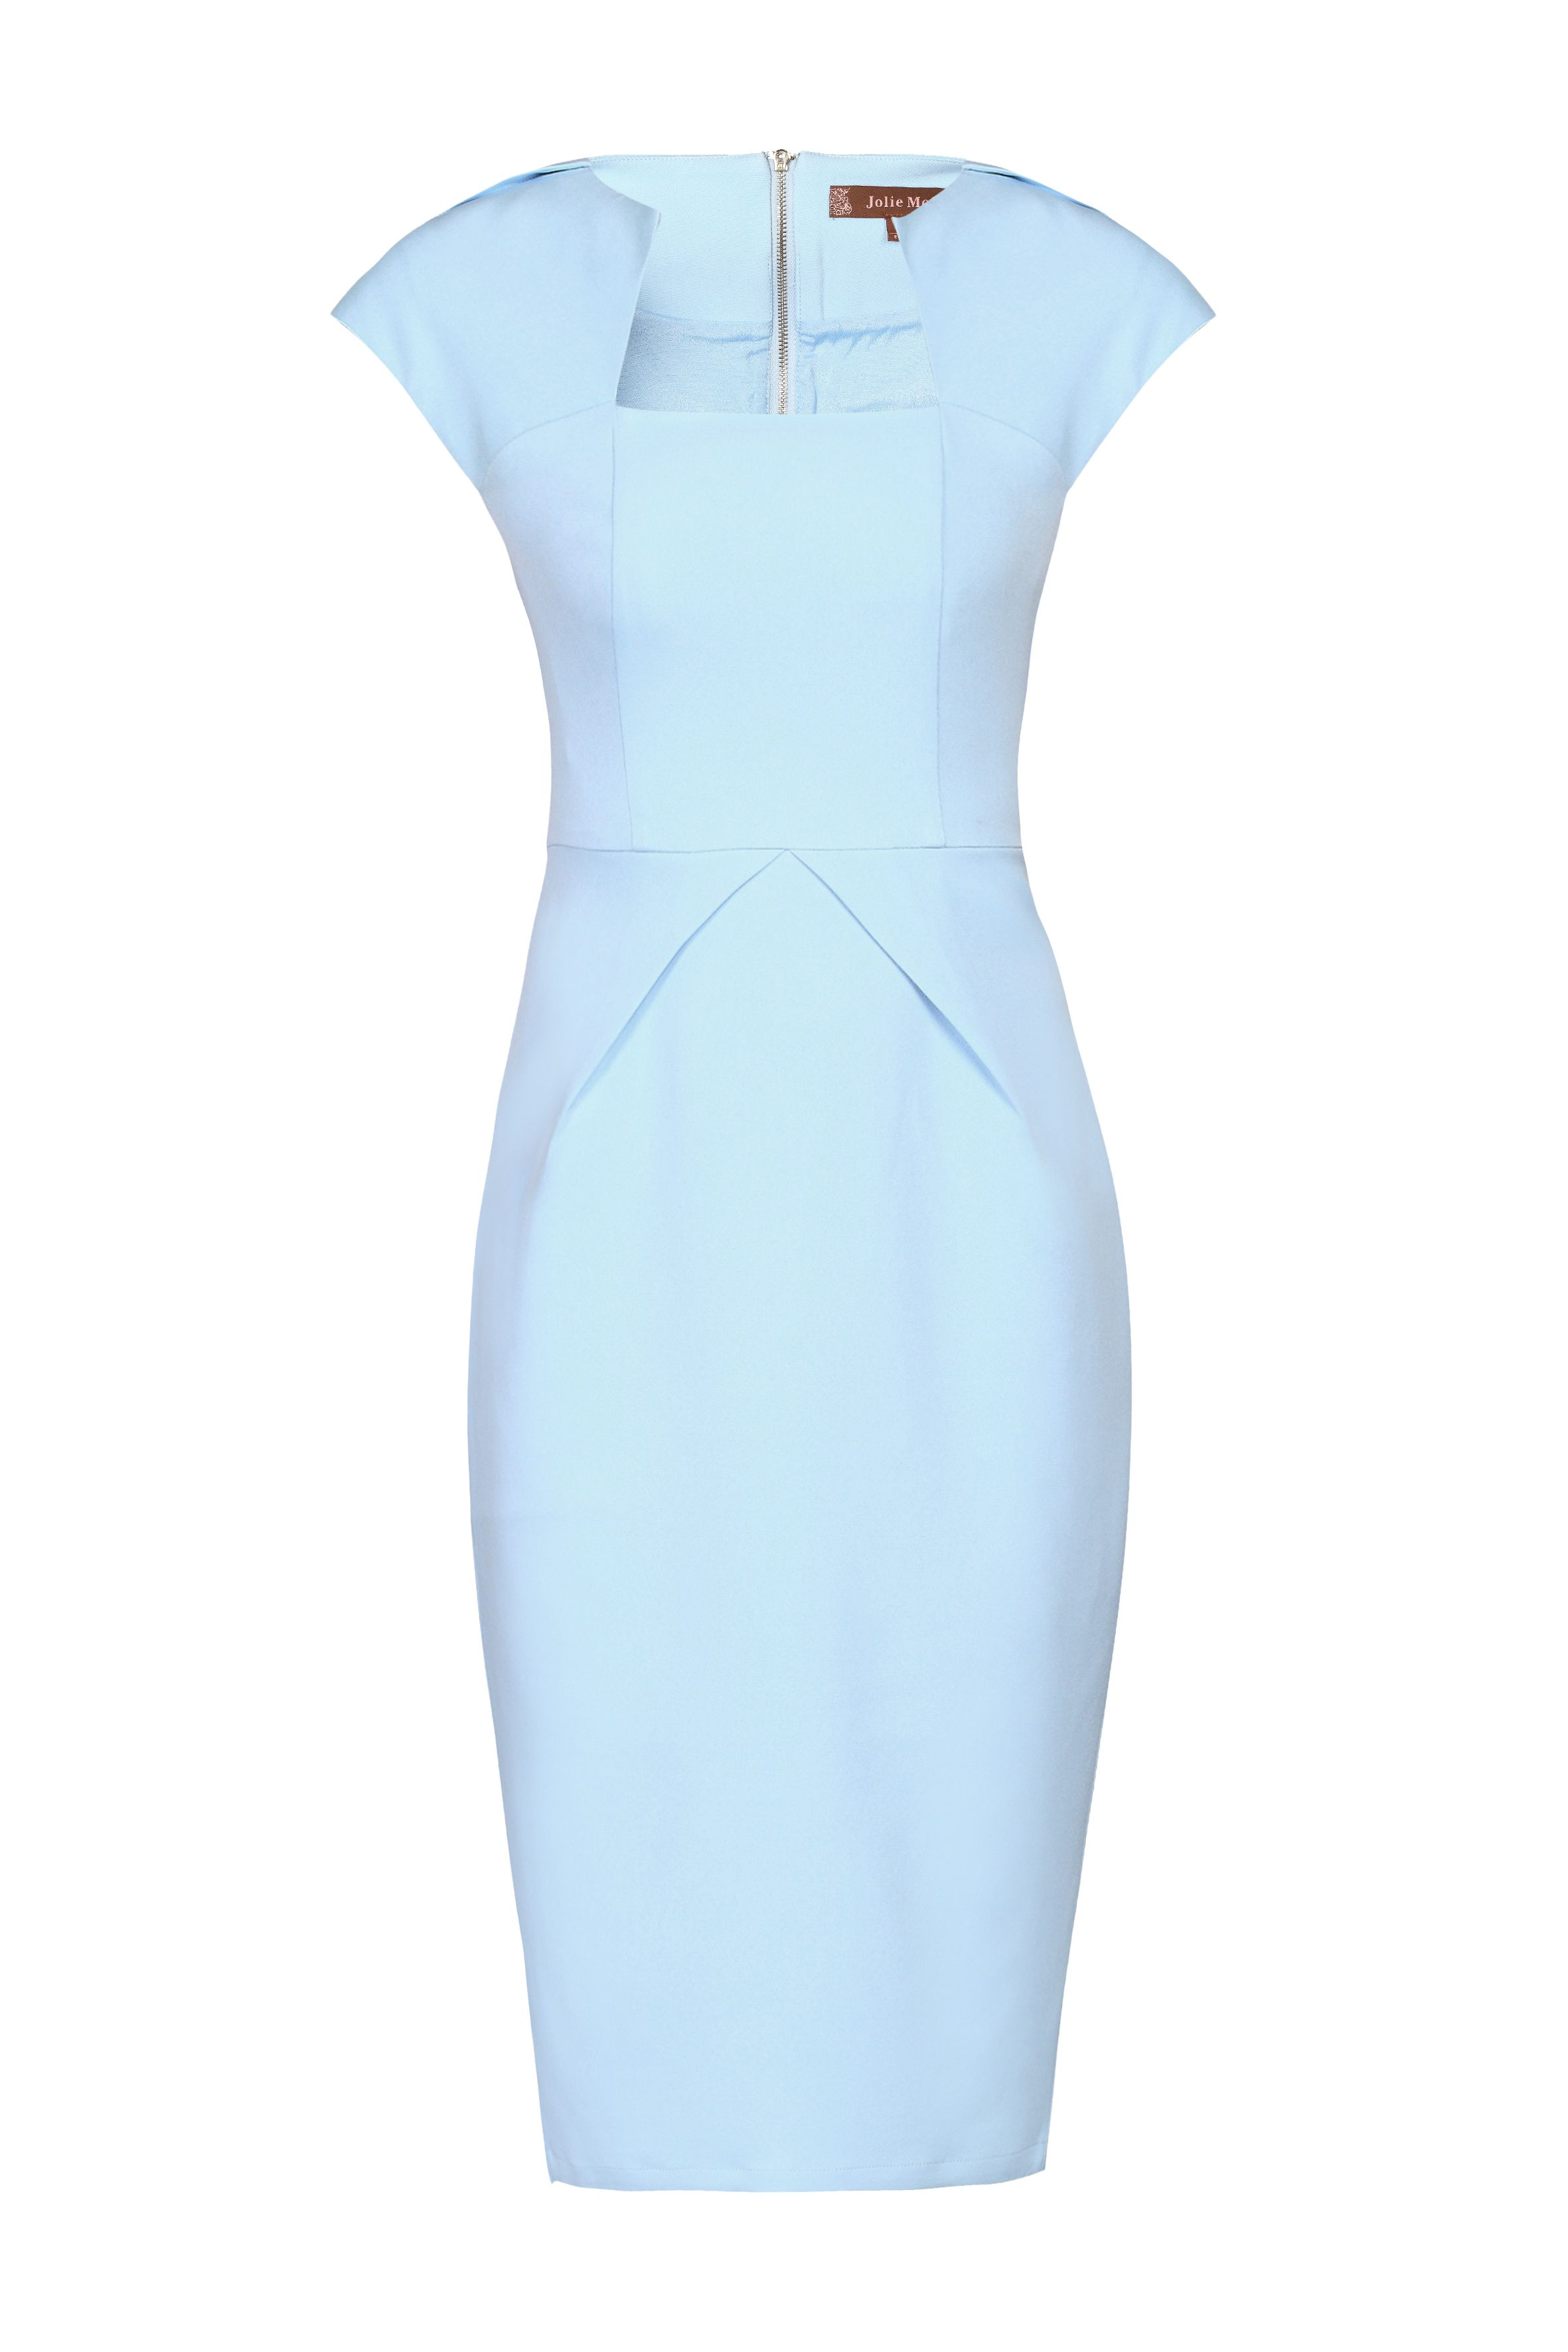 Jolie Moi Constructed Fold Detail Dress, Blue